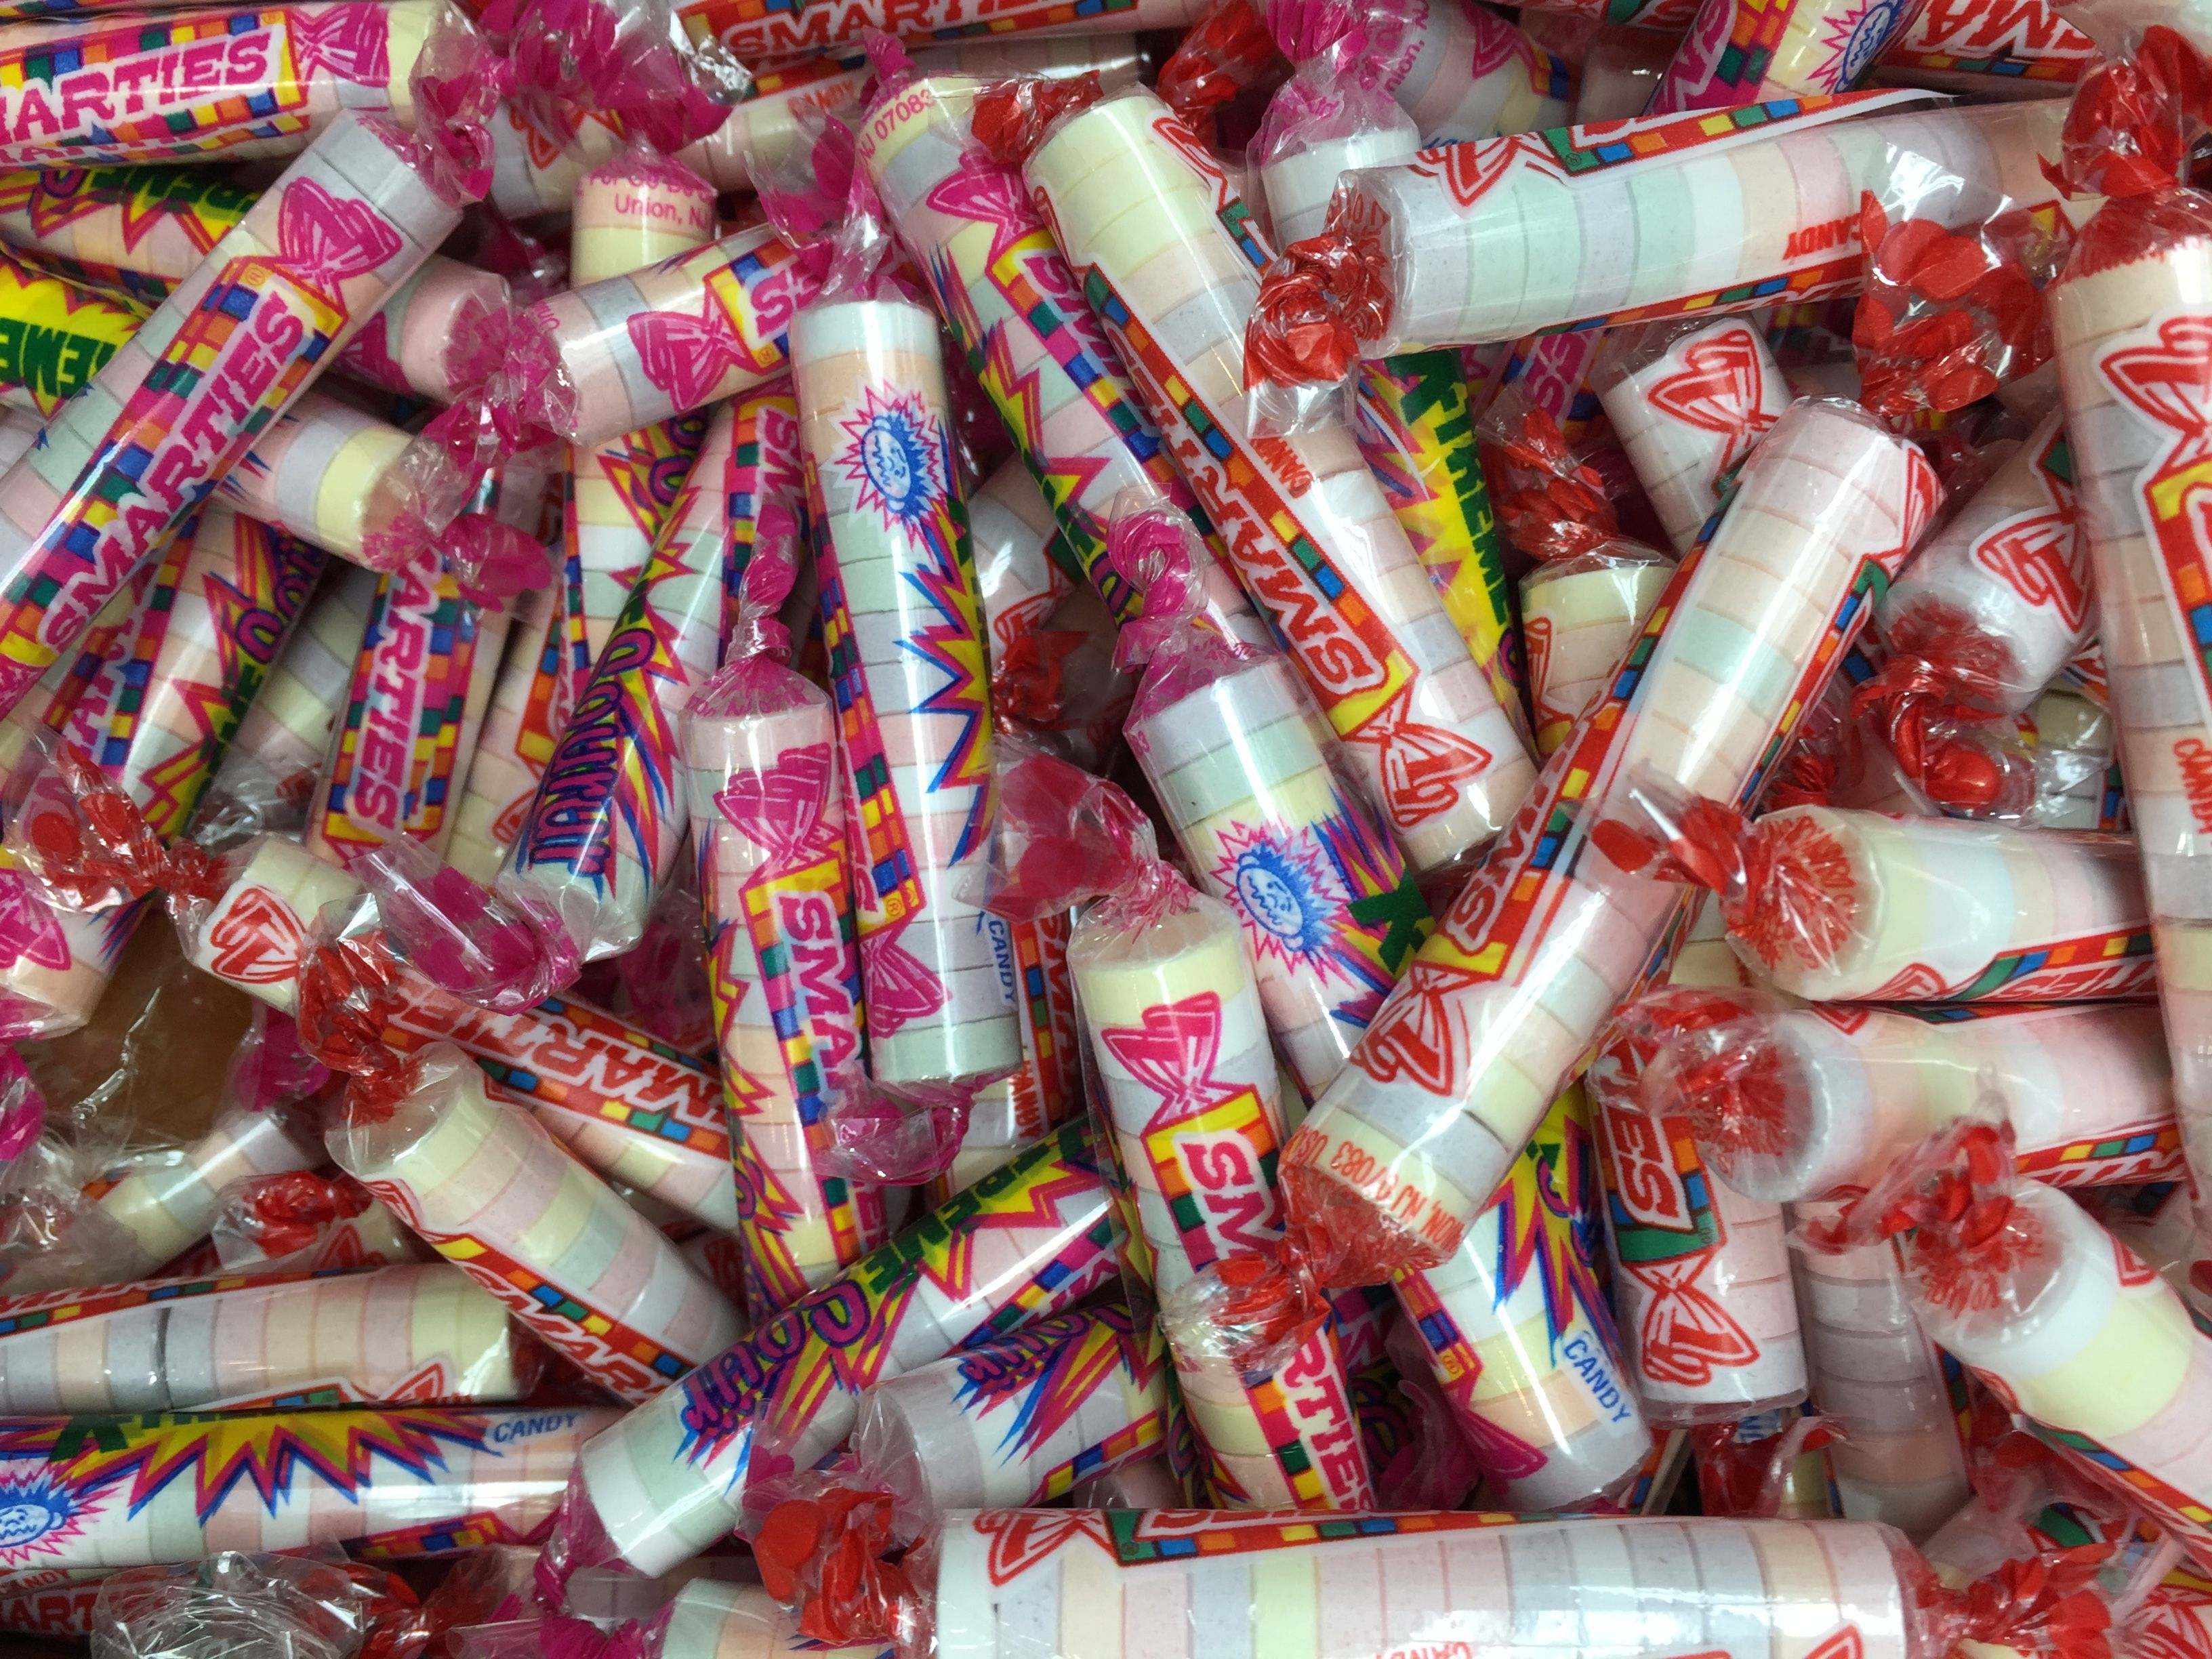 Smarties - chalky/powdery, sour/bitter and always tempting